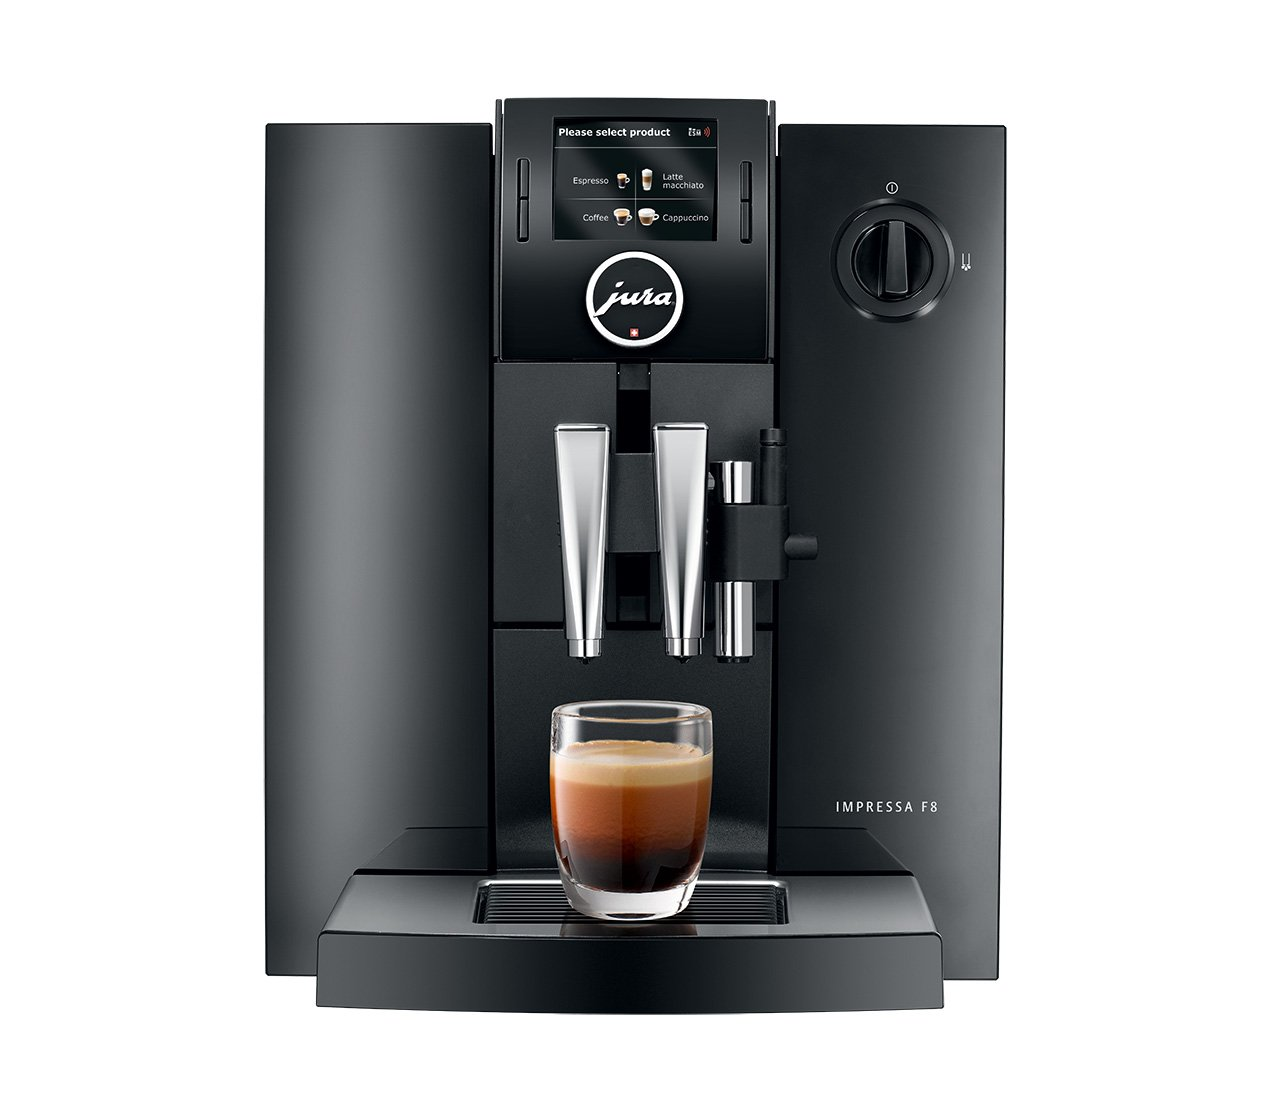 Hire or rent Coffee / Espresso Machine for exhibitions, shows and fairs in the UK